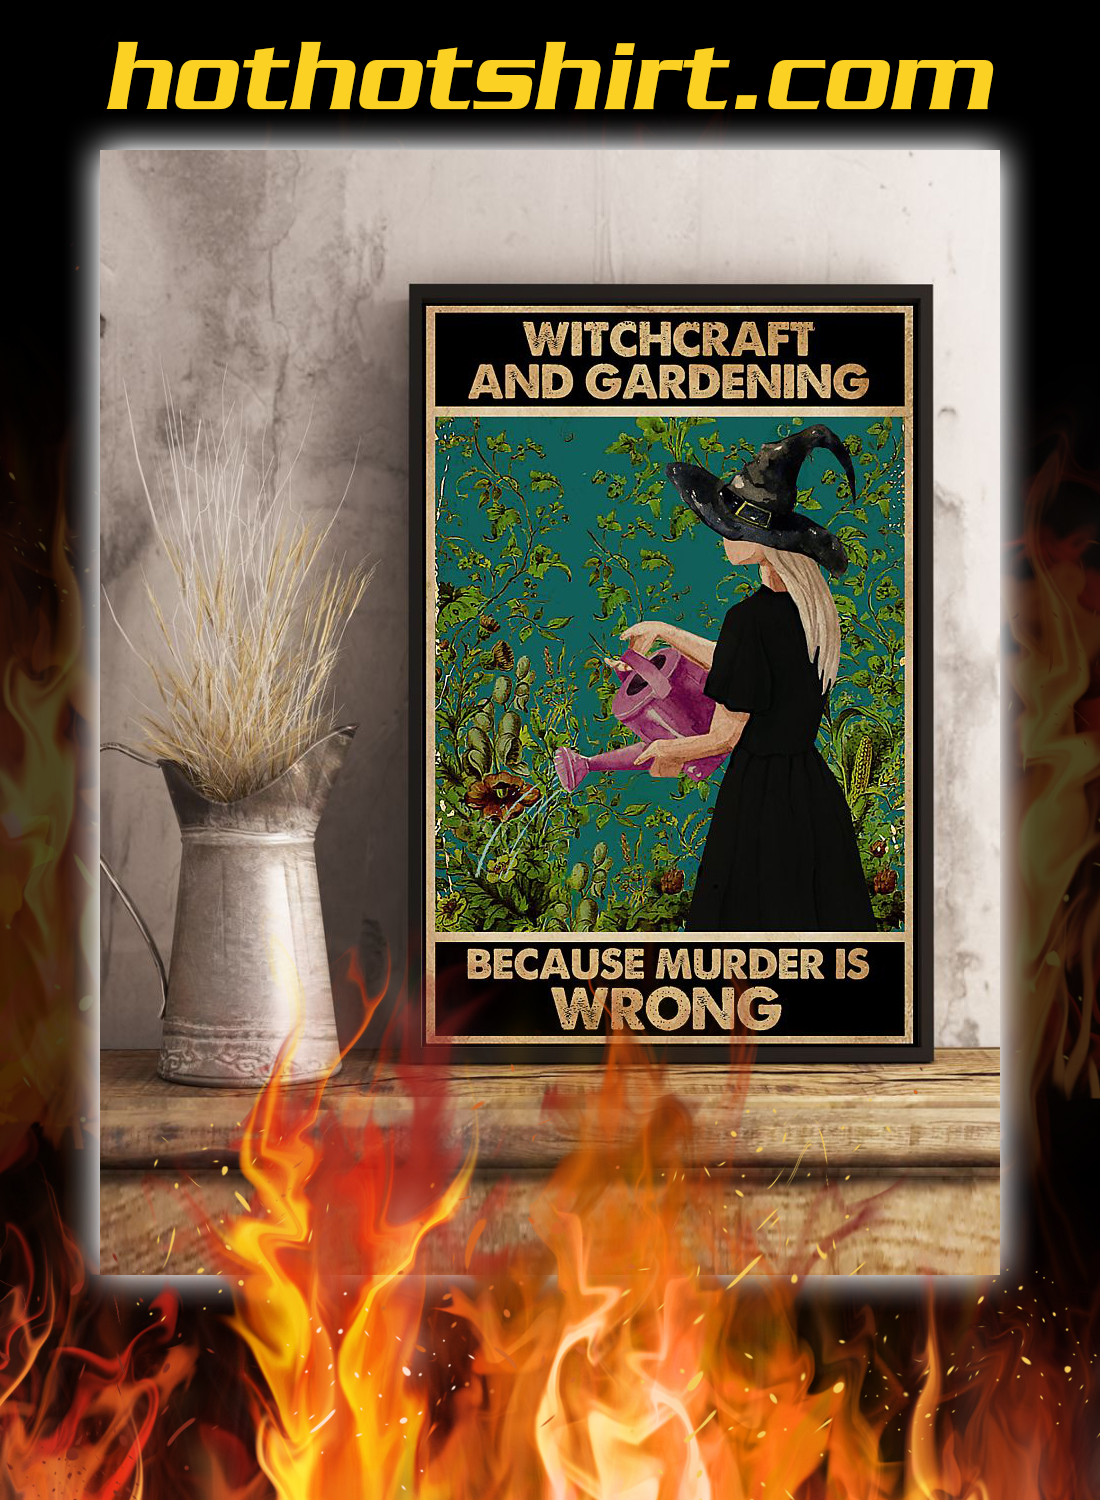 Witchcraft and gardening becasue murder is wrong poster. 1